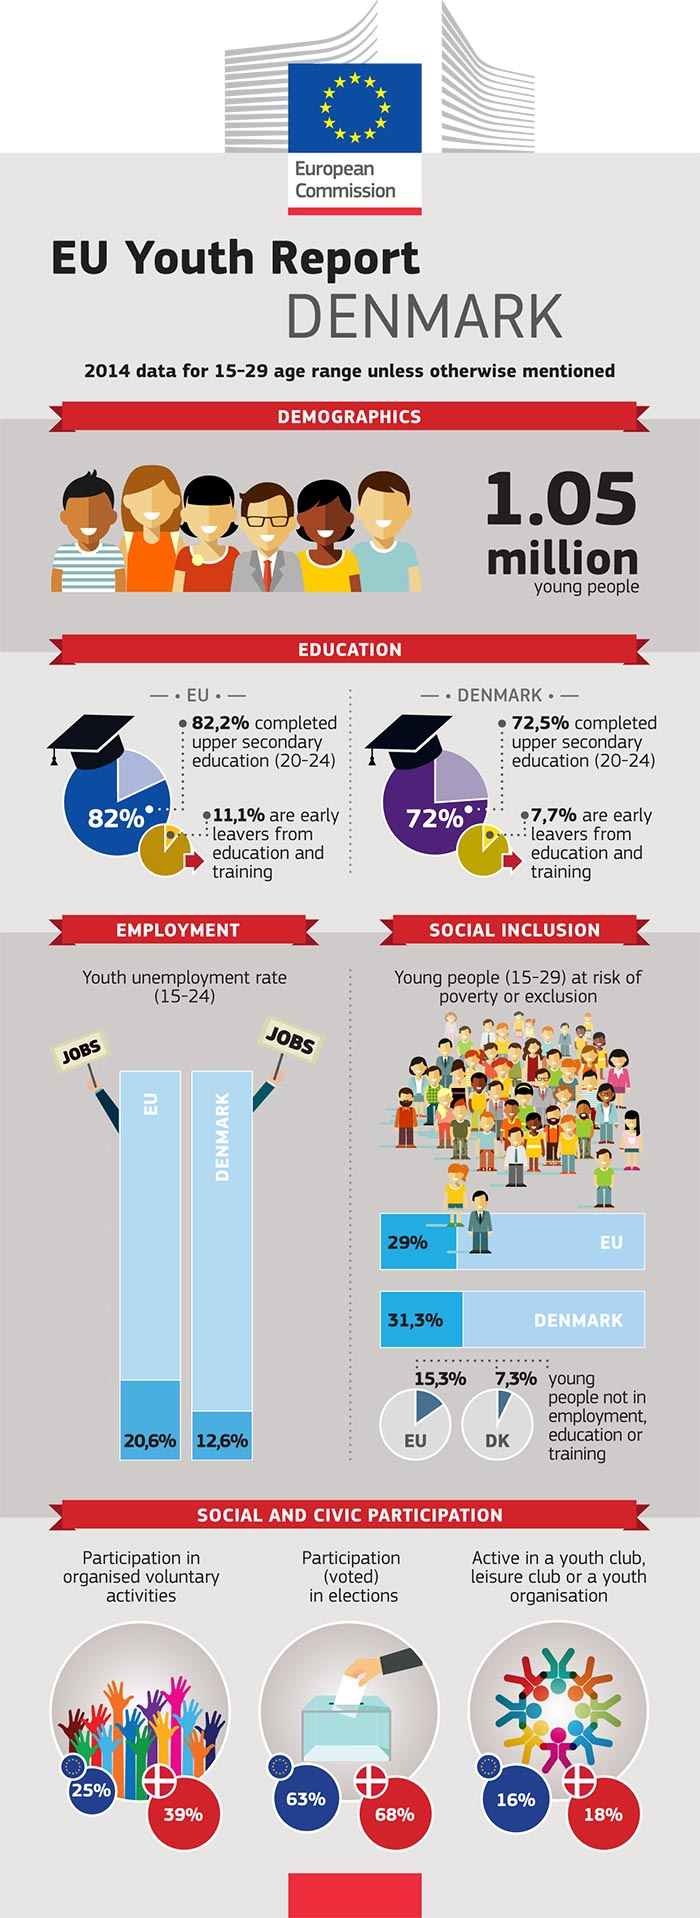 EU Youth Report infographic: Denmark